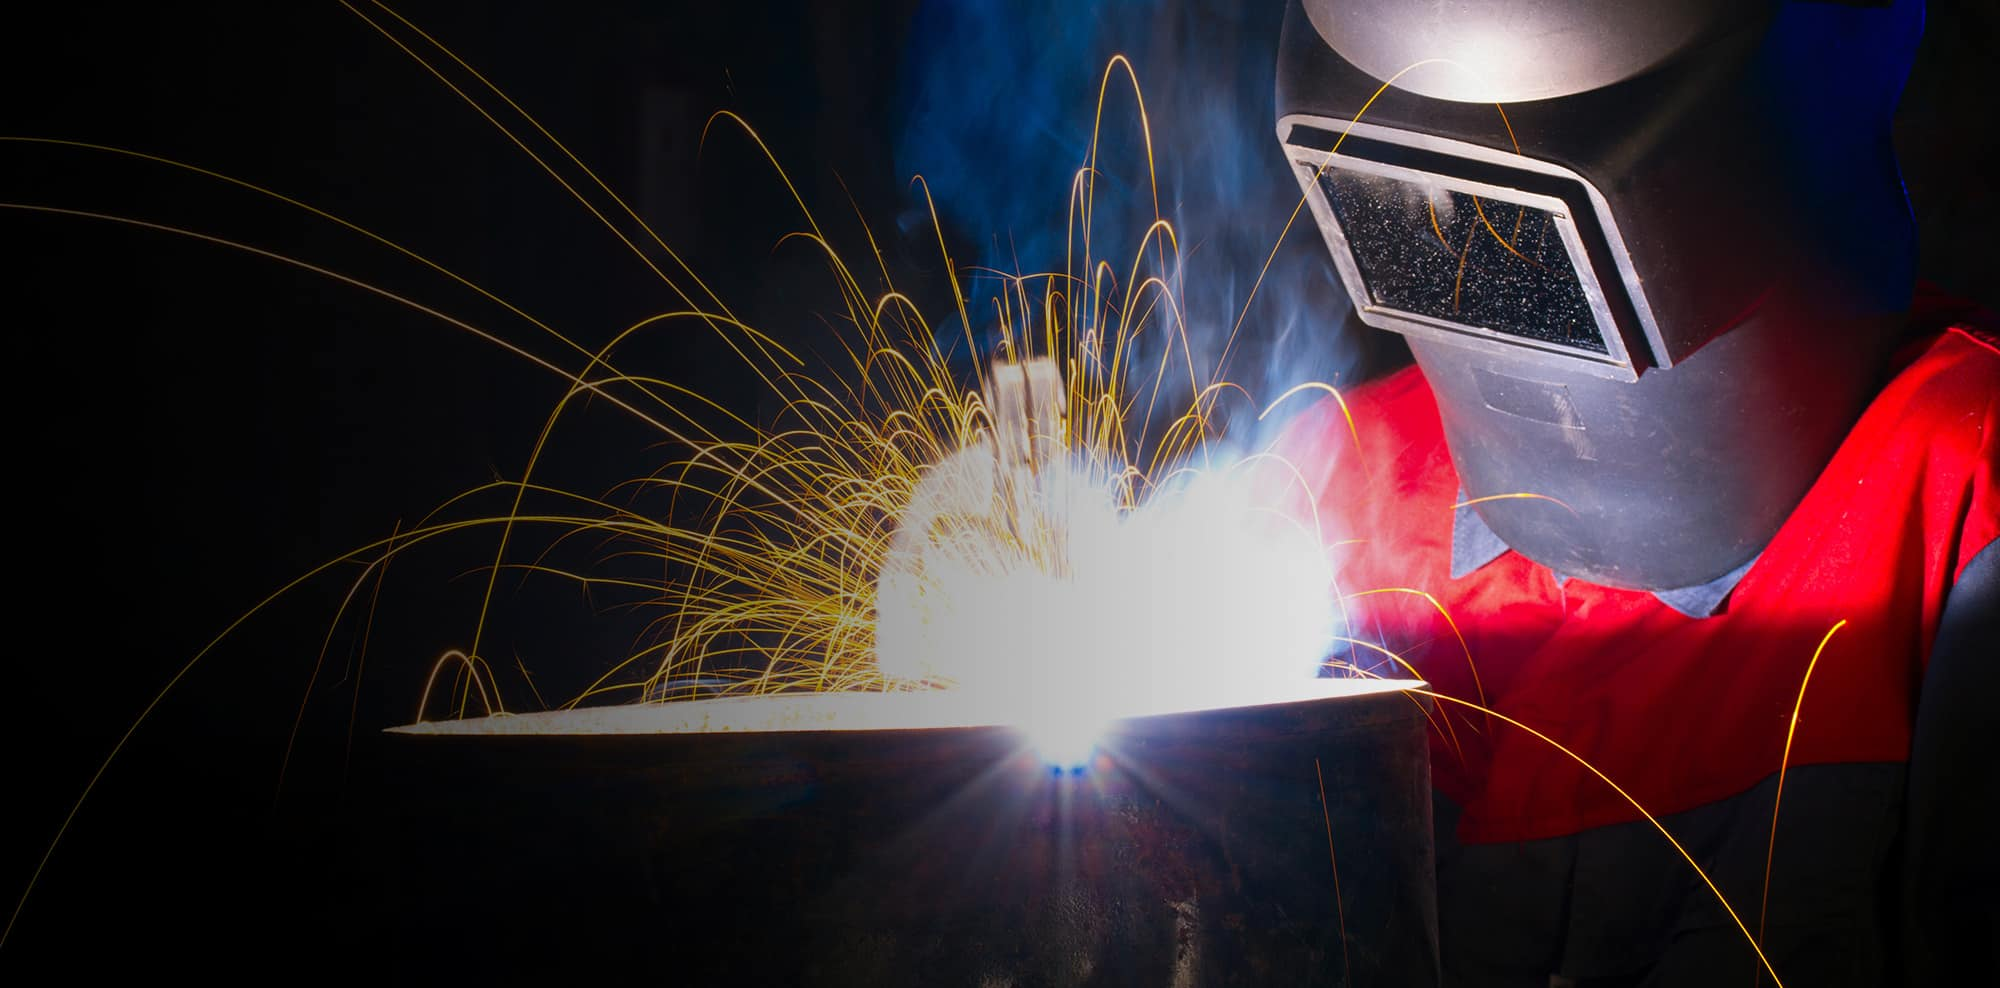 Conquer crafts and repairs with a basic welding course